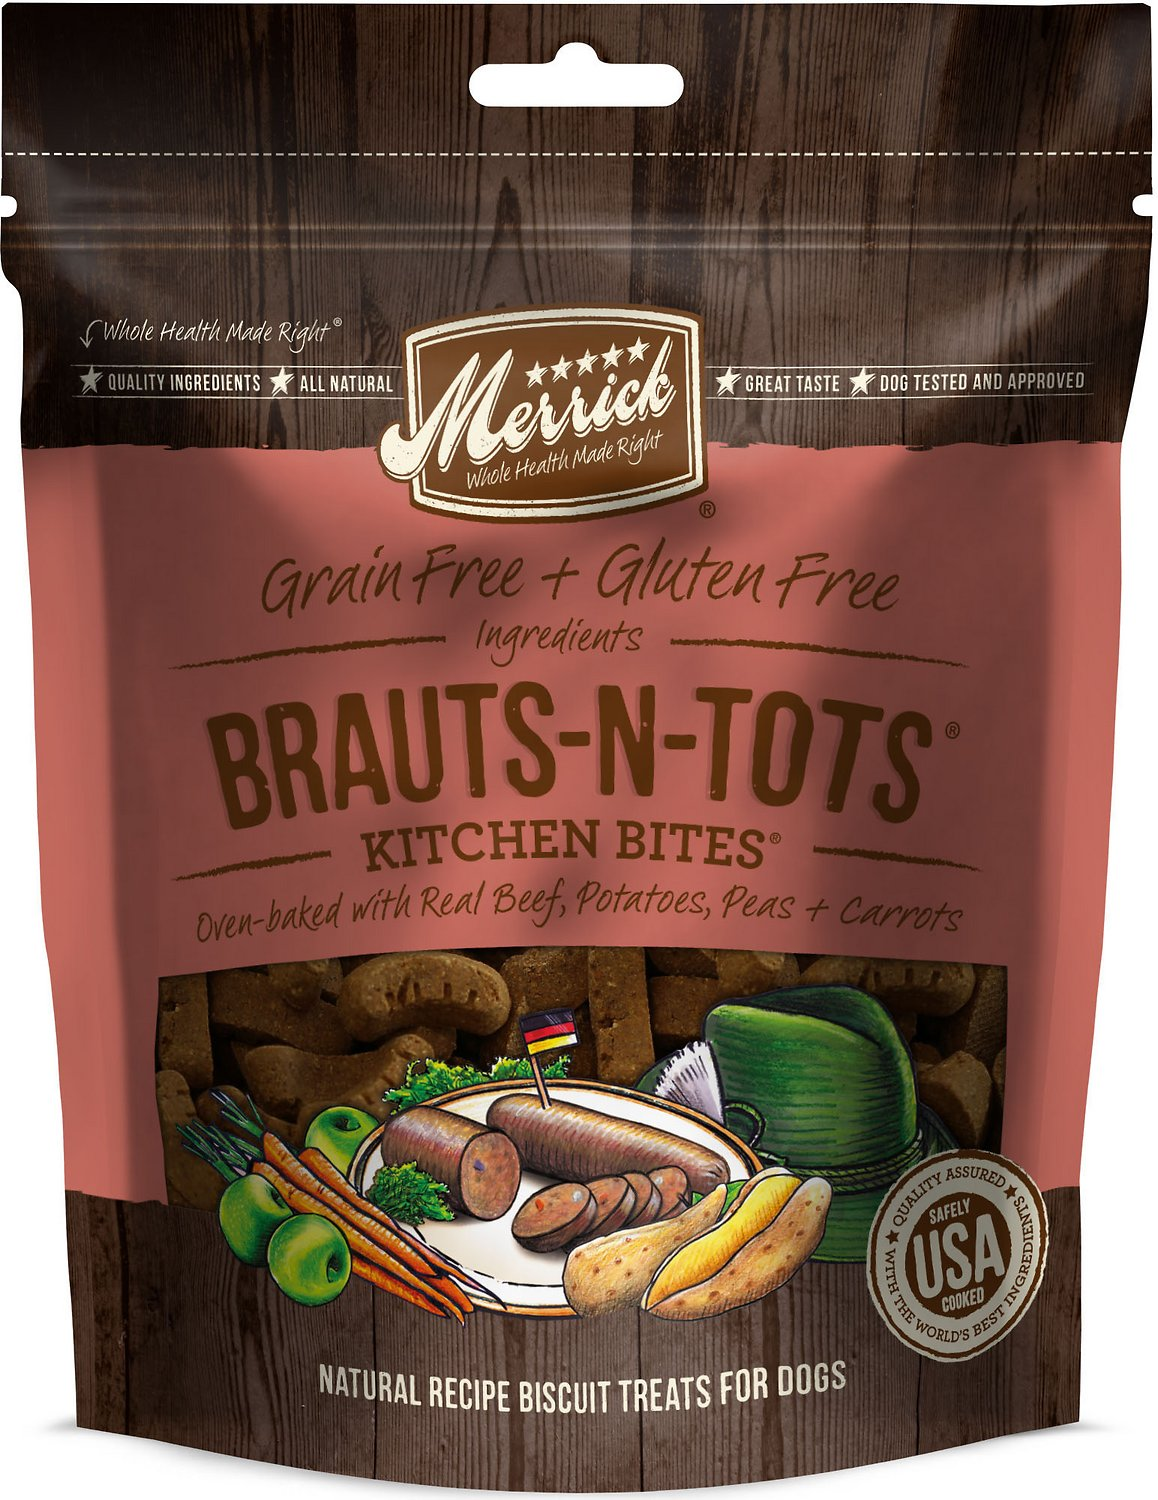 Merrick Kitchen Bites Brauts-n-Tots Grain-Free Biscuits Dog Treats, 9-oz bag